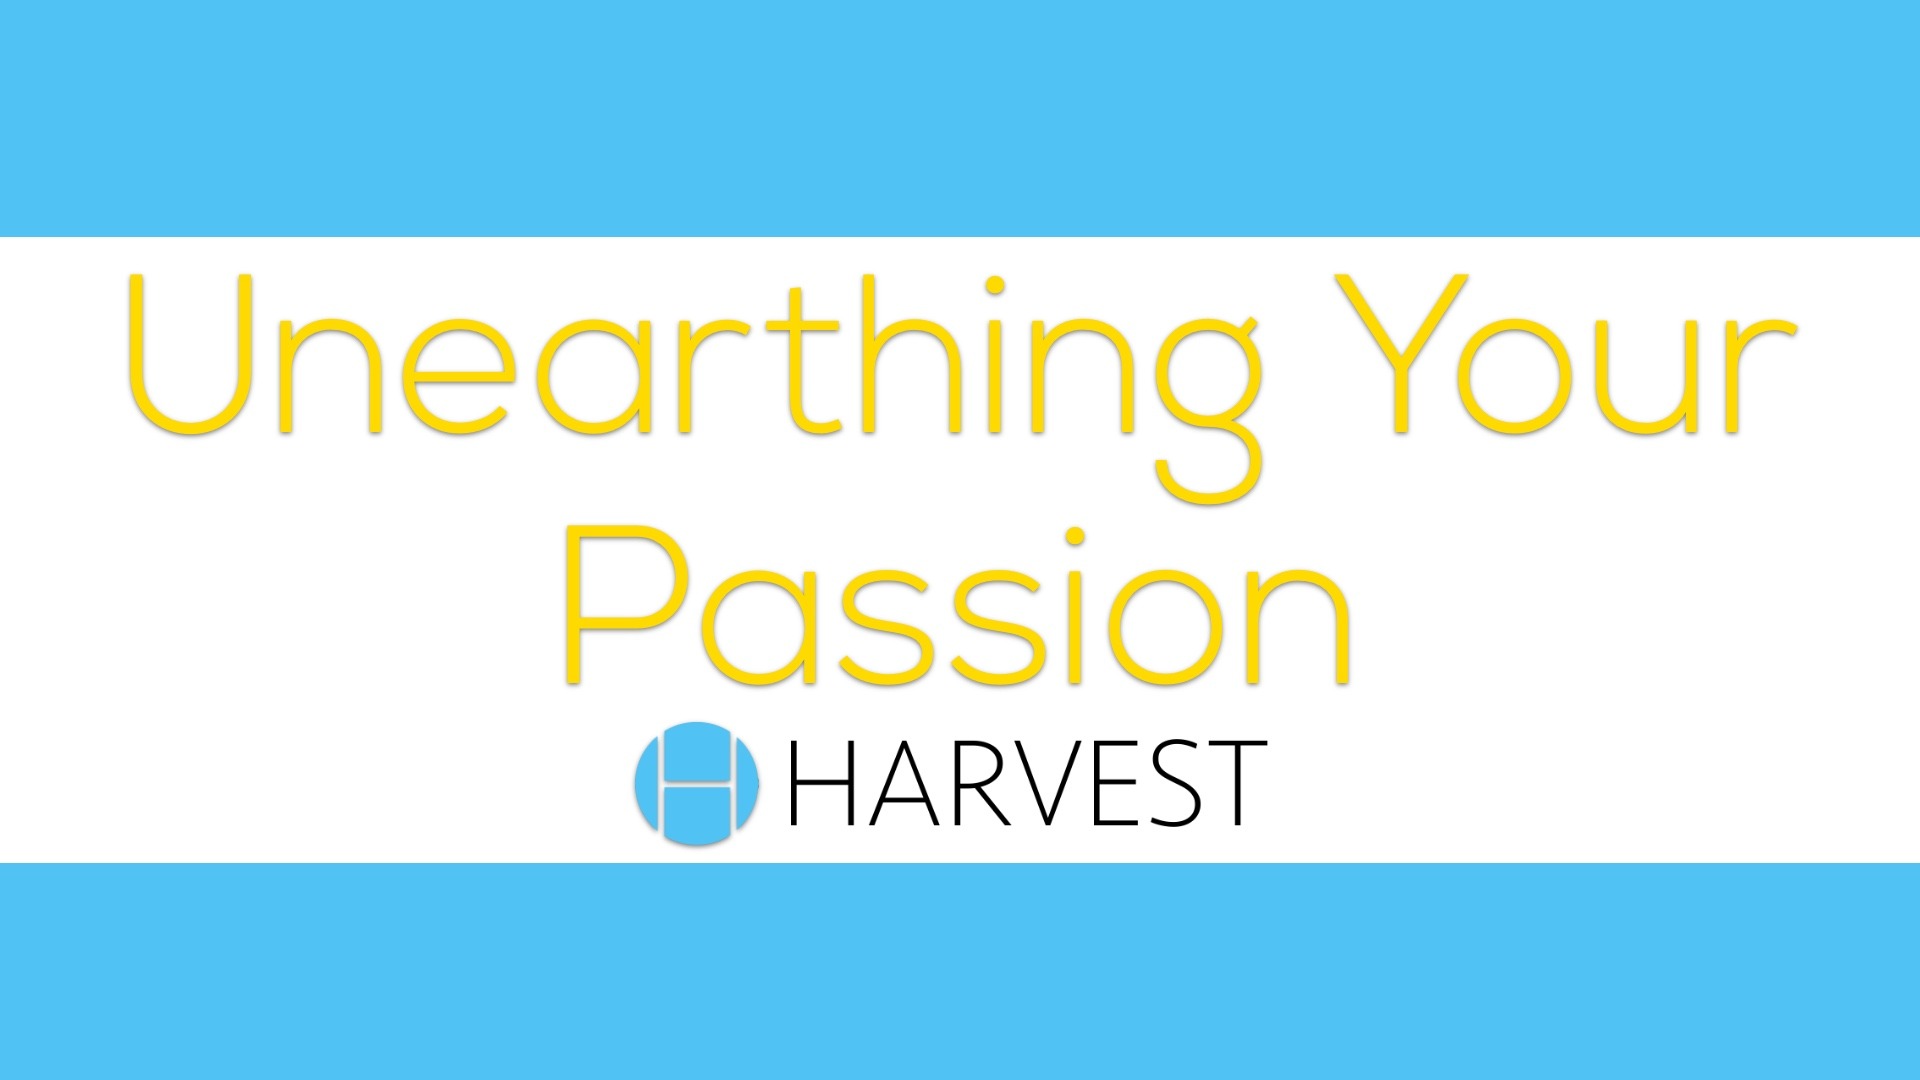 Palm Sunday: Unearthing Your Passion